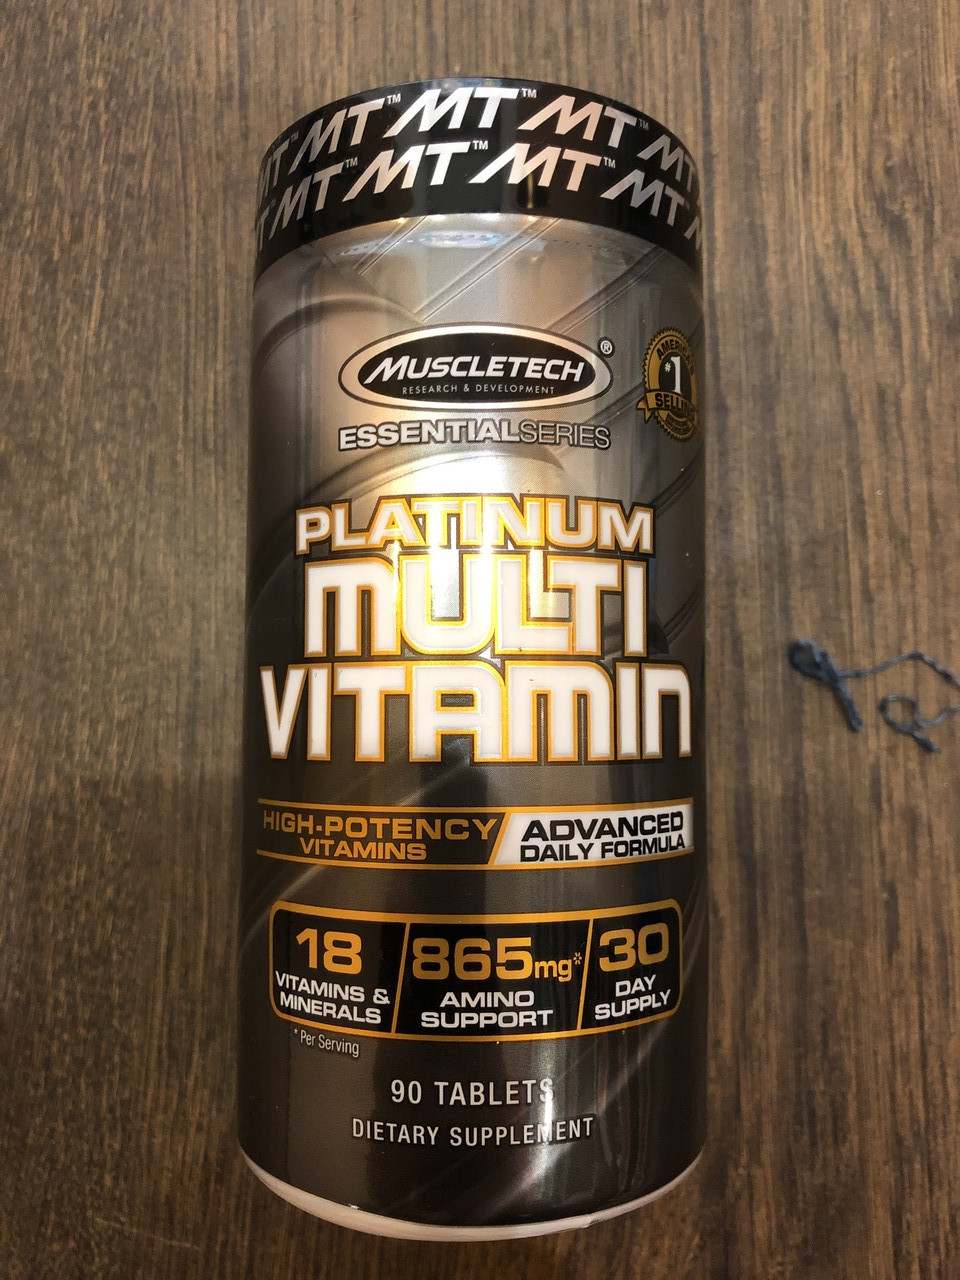 Вітаміни і мінерали, MuscleTech, Platinum Multi Vitamin, 90tabs